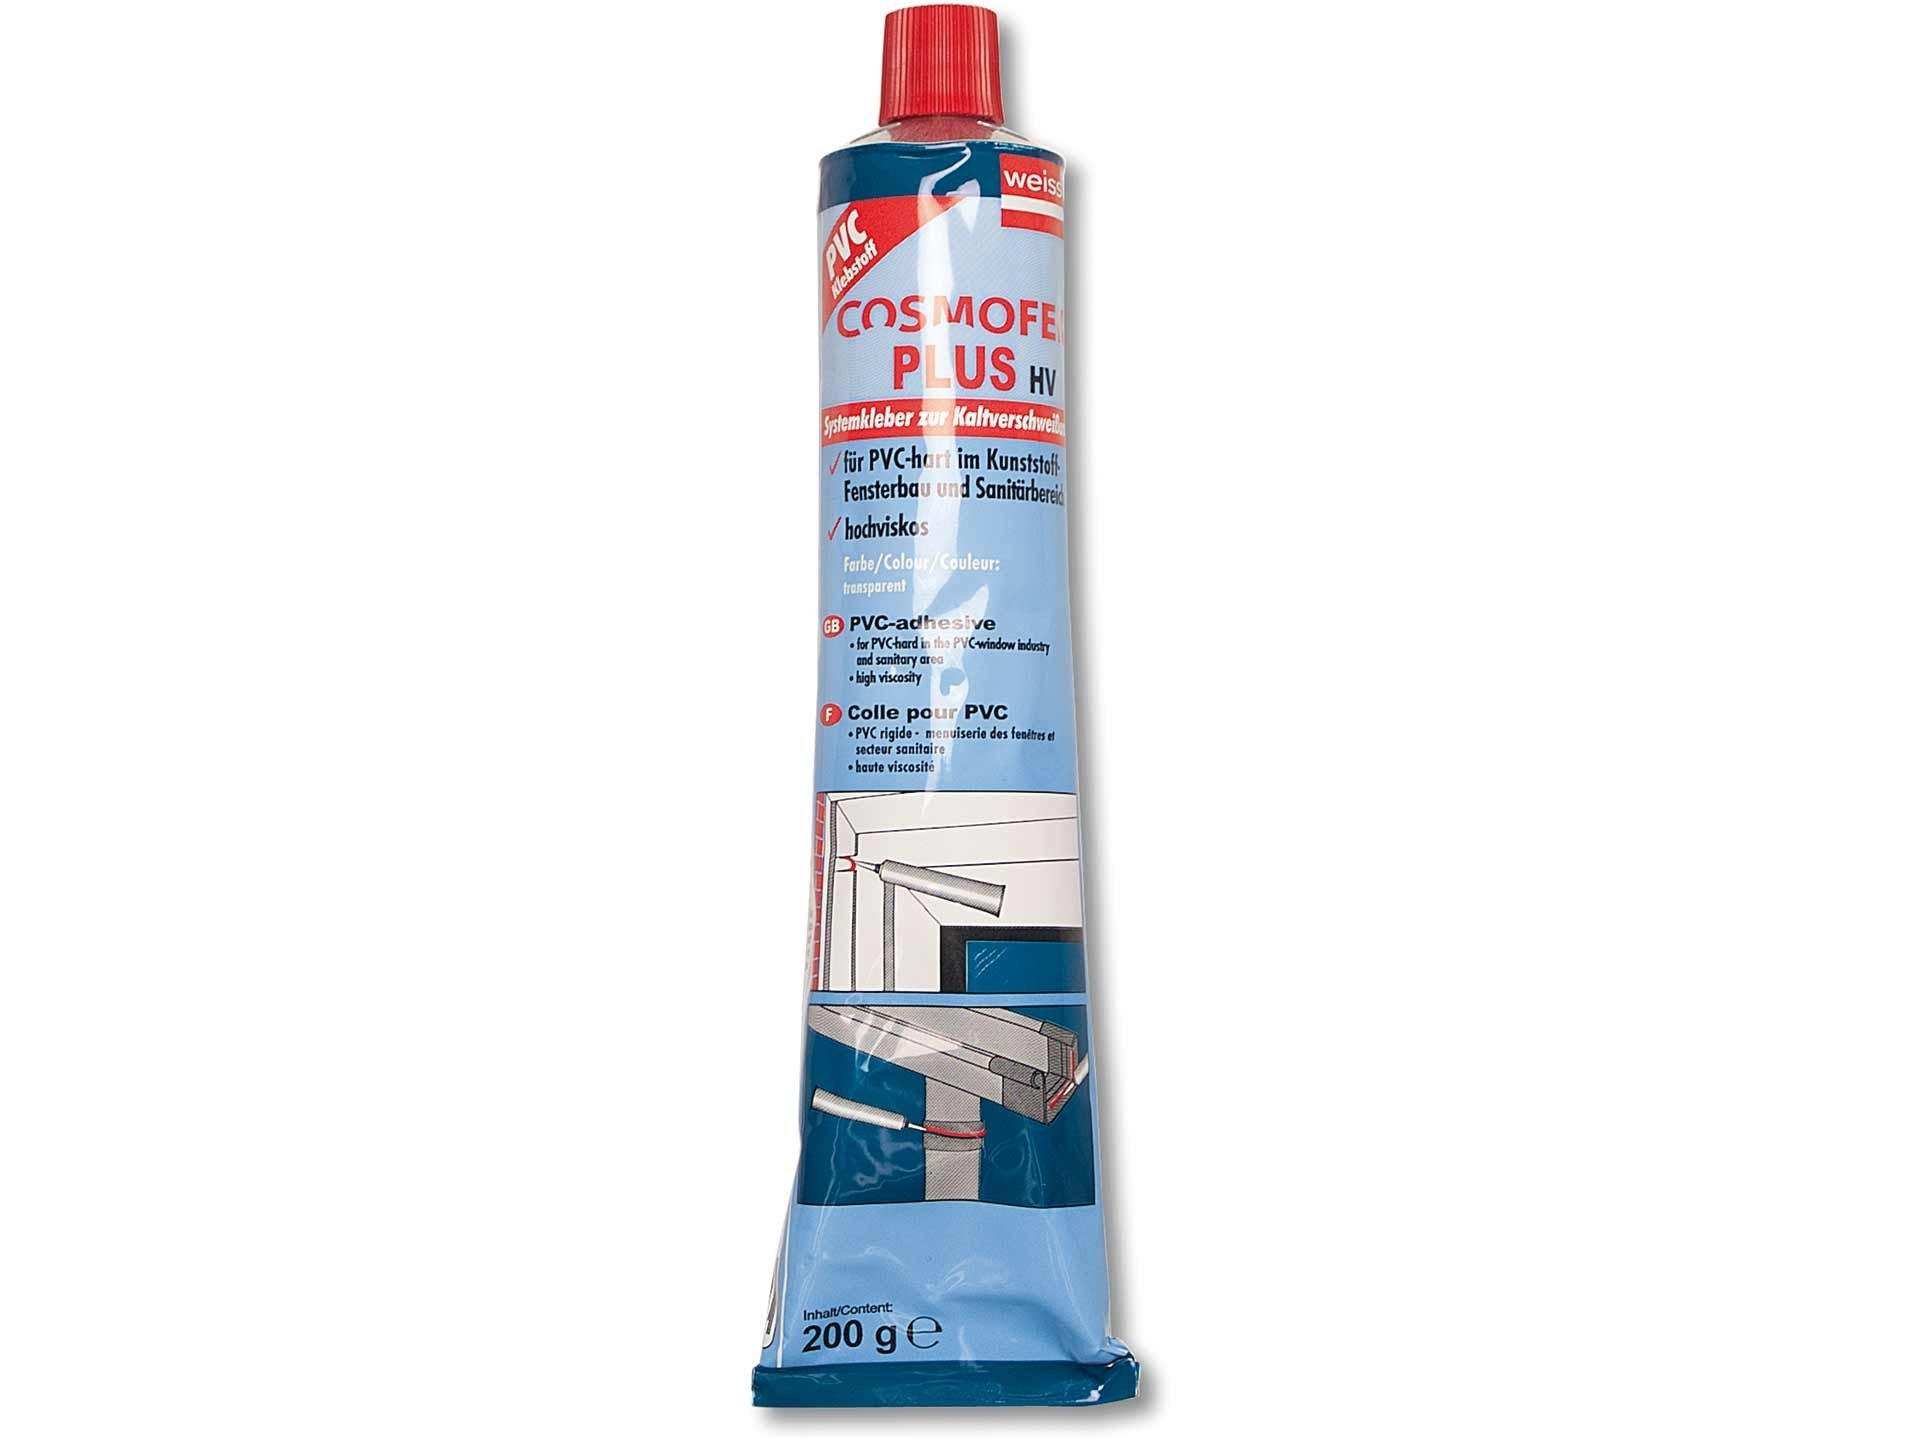 Buy Cosmofen Plus HV PVC Glue Online At Modulor